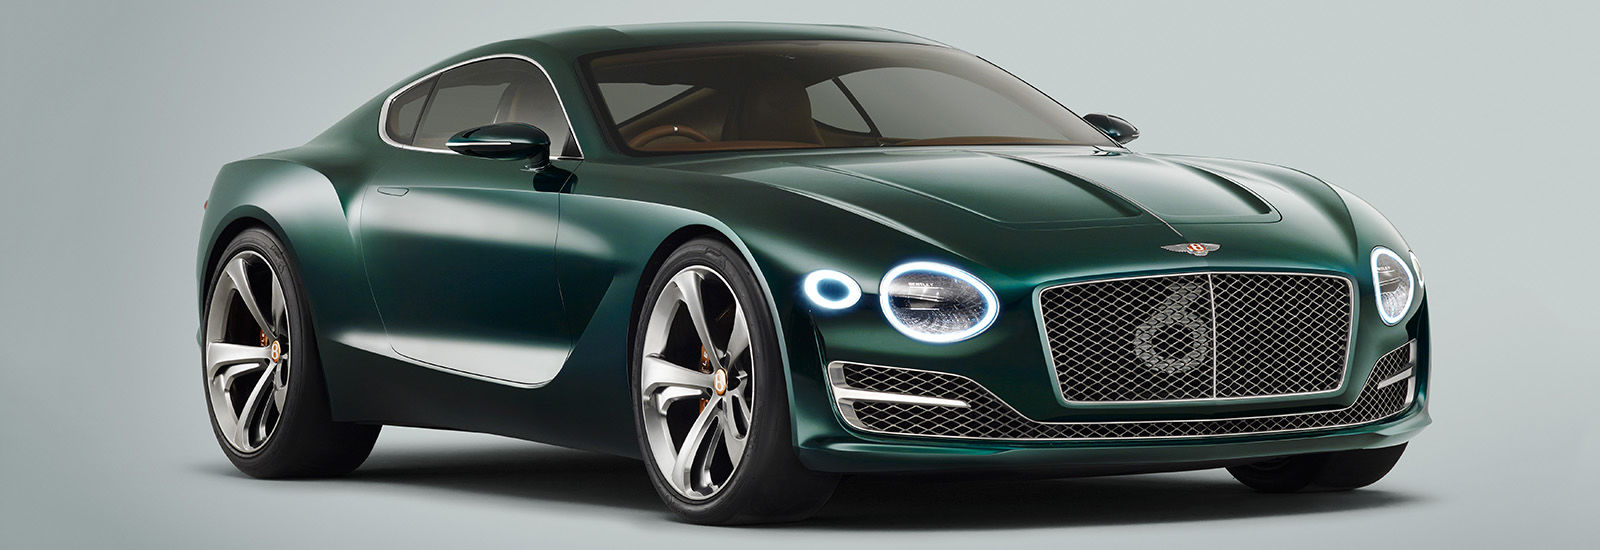 2018 Bentley Continental GT price specs release date | carwow